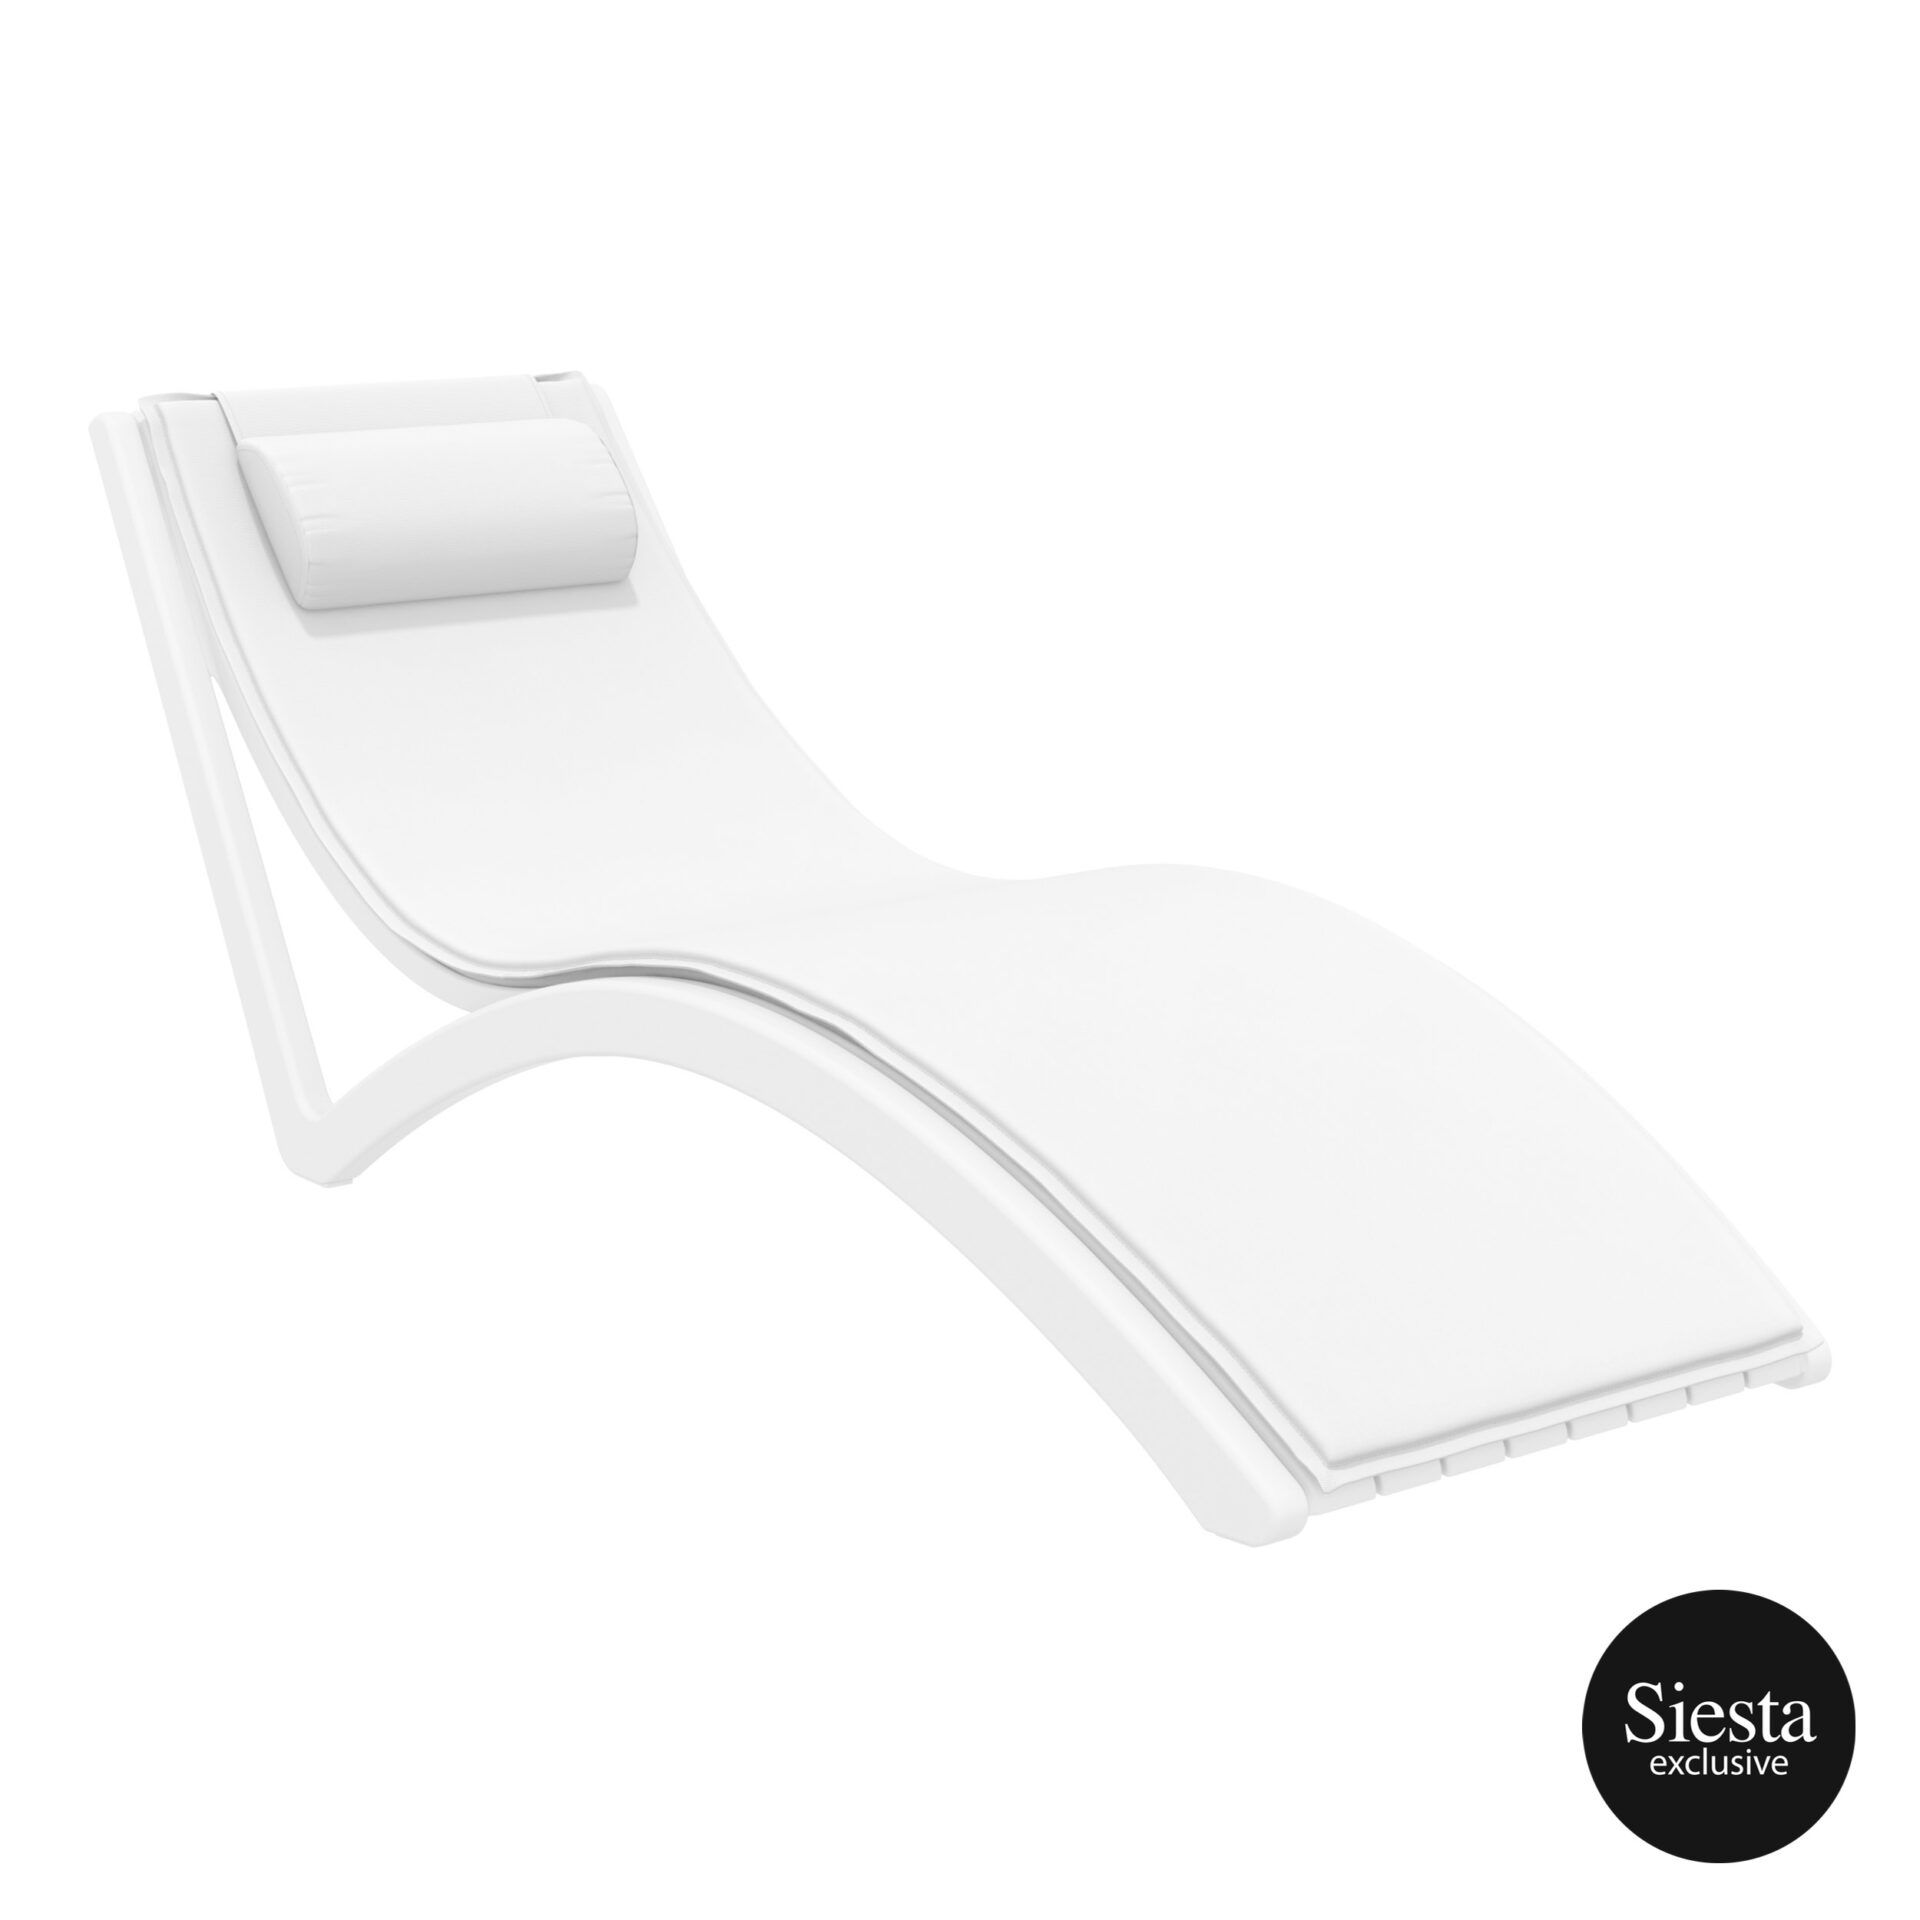 outdoor polypropylene slim sunlounger pillow cushion white white front side